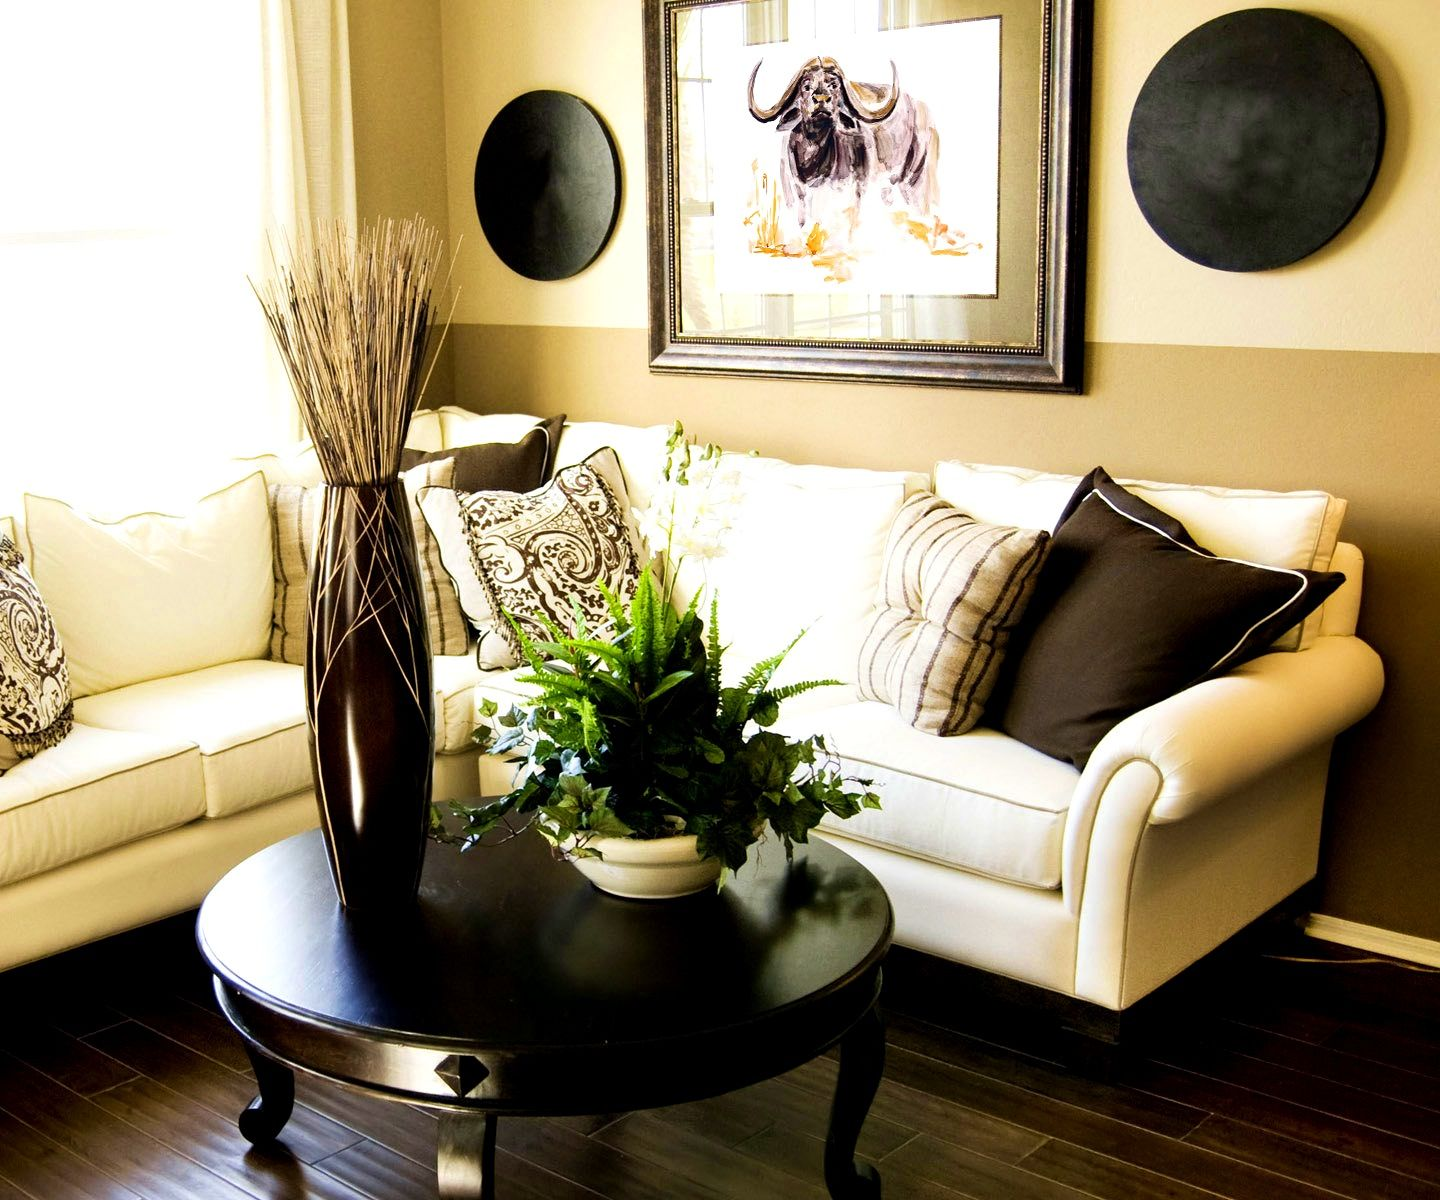 Top Home Decor Collections At Great Value, And Buy Them At Your Local At Home  Stores. Find Top Value In At Homeu0027s Accents, Decorations And Wall  Collection ...